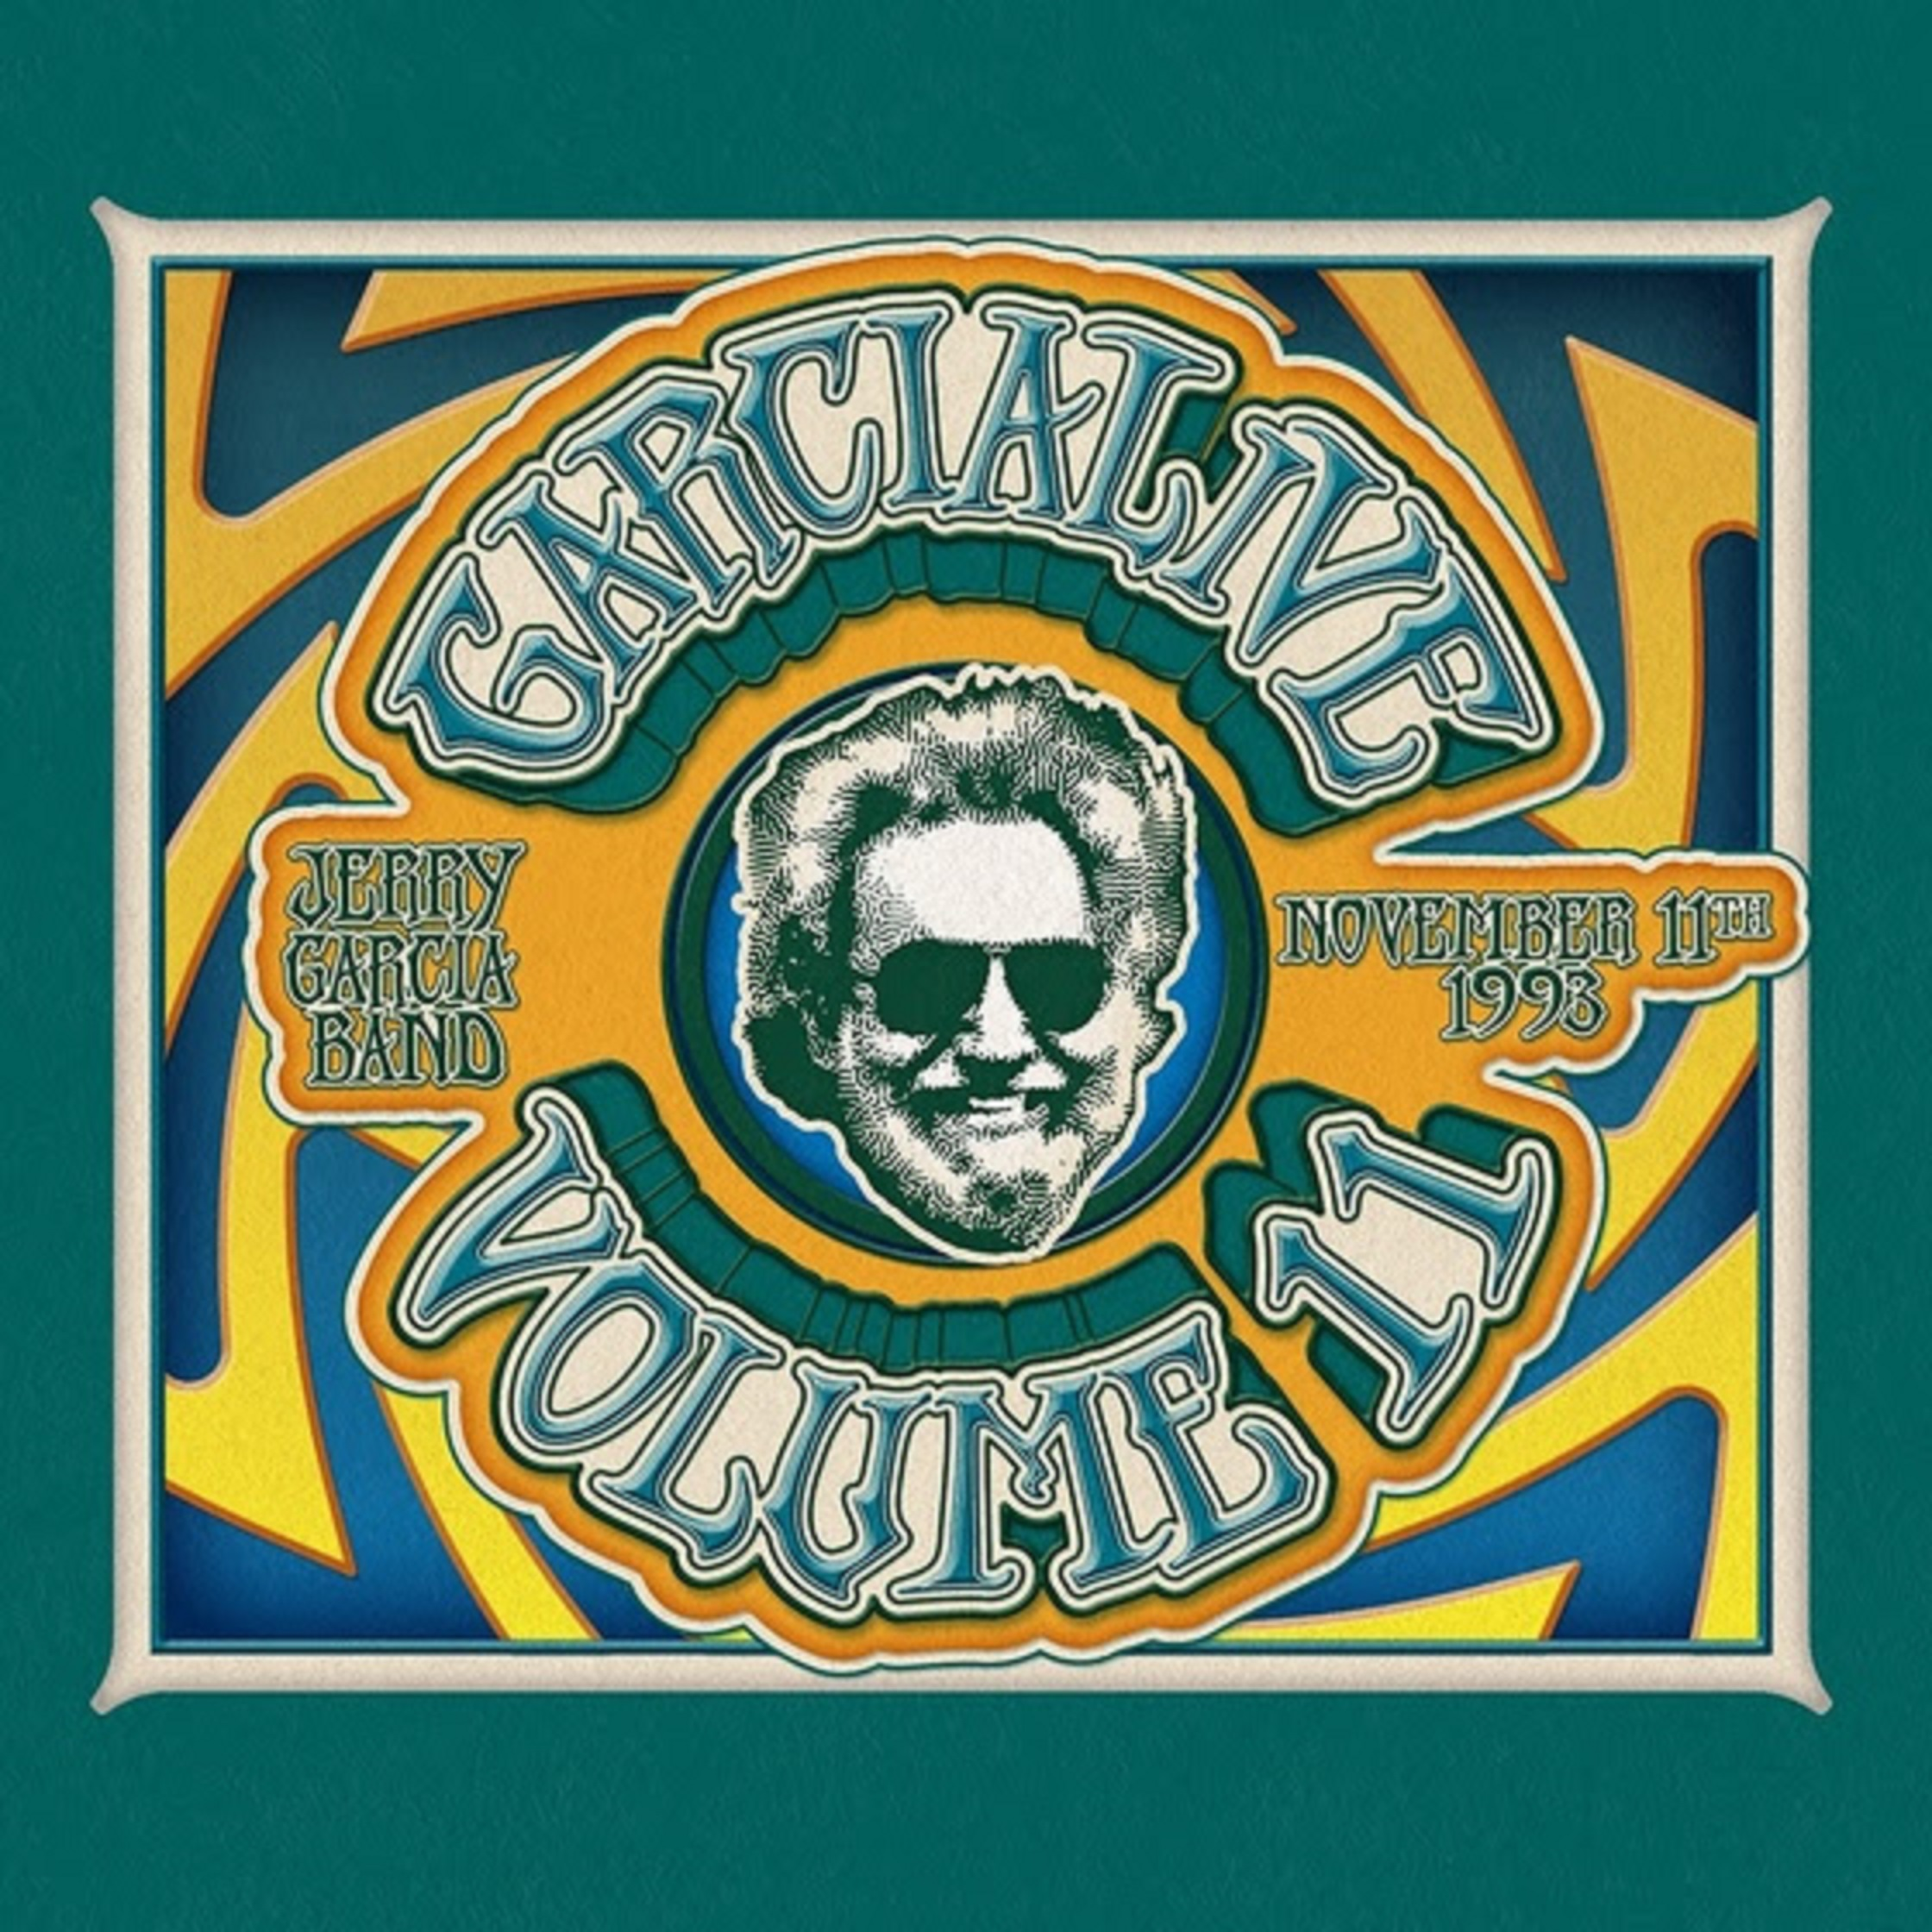 "Jerry Garcia Band Featured On ""GarciaLive Volume 11, November 11th, 1993, Providence Civic Center"" - Out July 12"